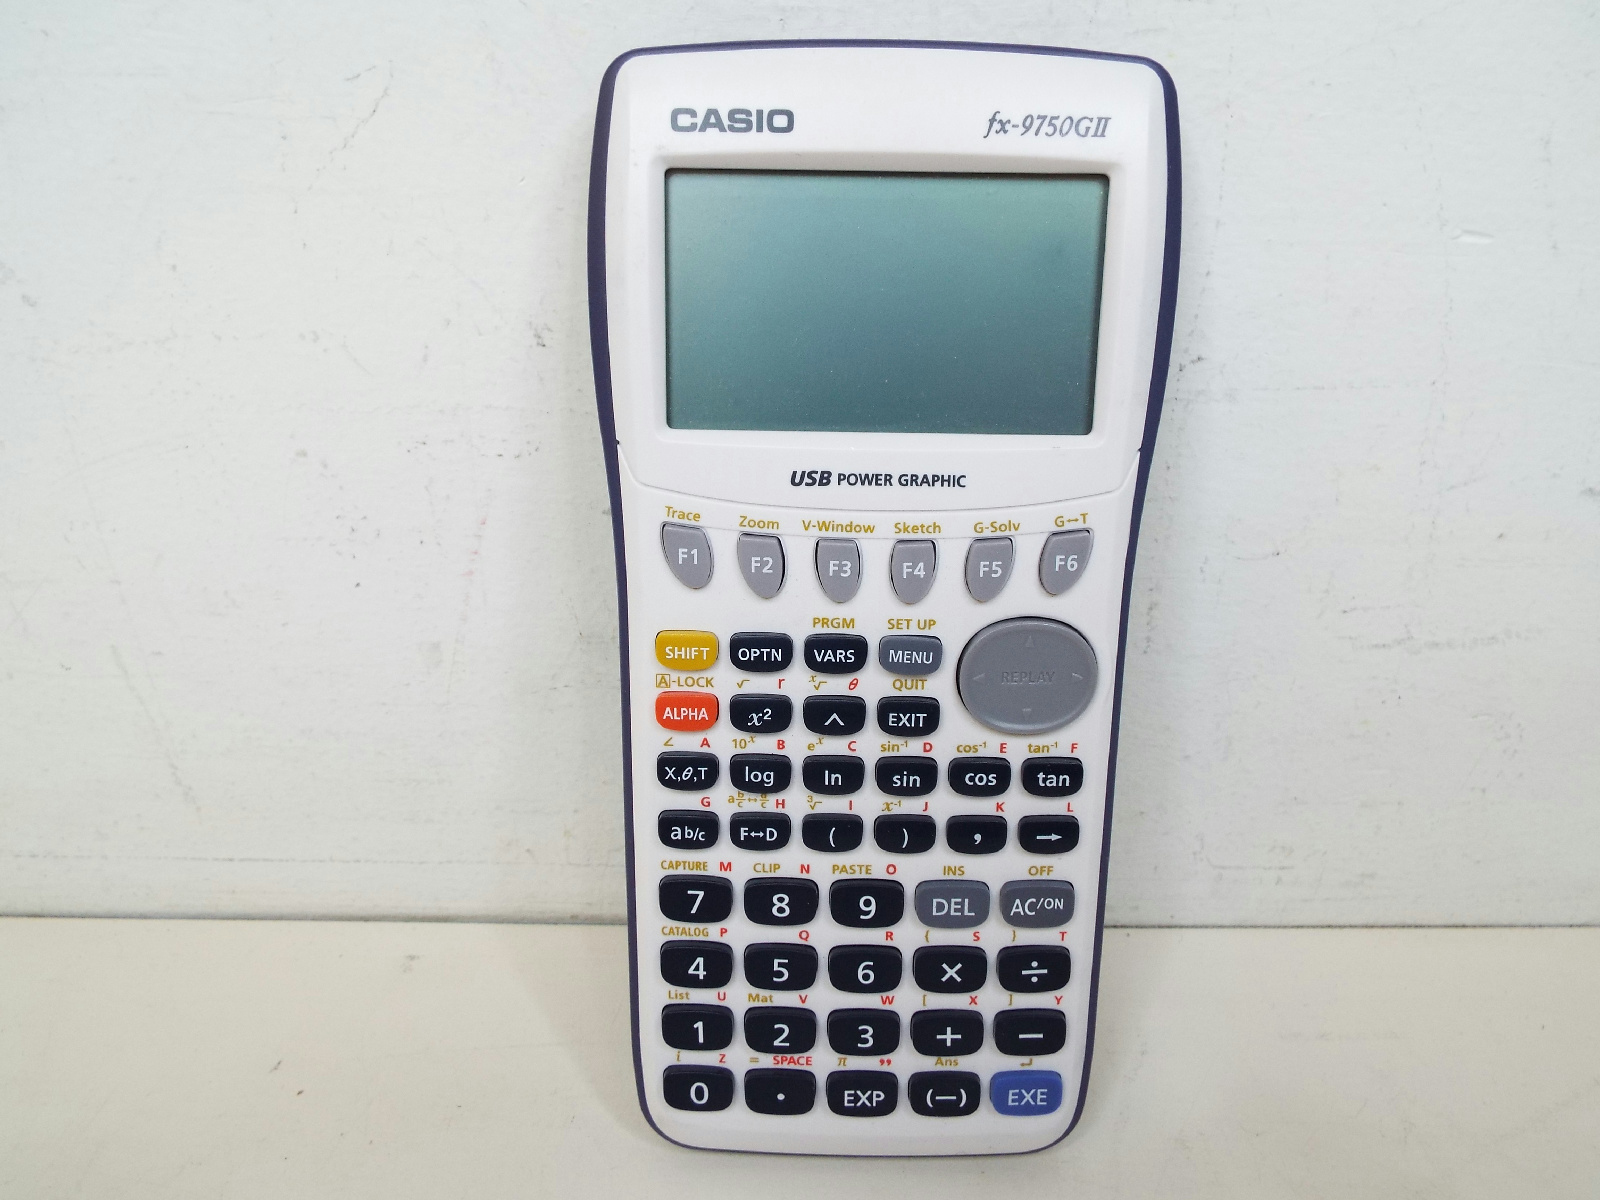 Details about casio fx 9750gii graphing calculator w usb port bundle